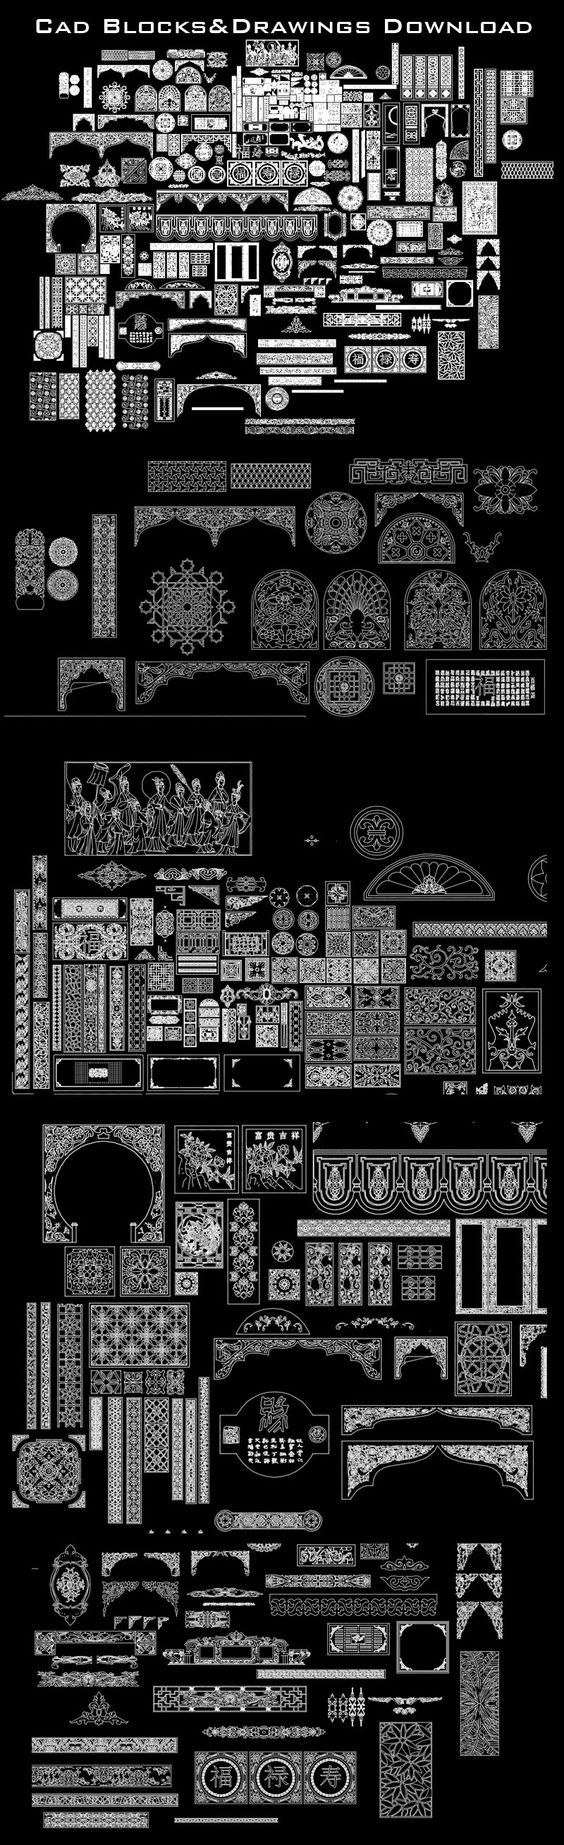 ★【Chinese Carved】-Cad Drawings Download|CAD Blocks|Urban City Design|Architecture Projects|Architecture Details│Landscape Design|See more about AutoCAD, Cad Drawing and Architecture Details